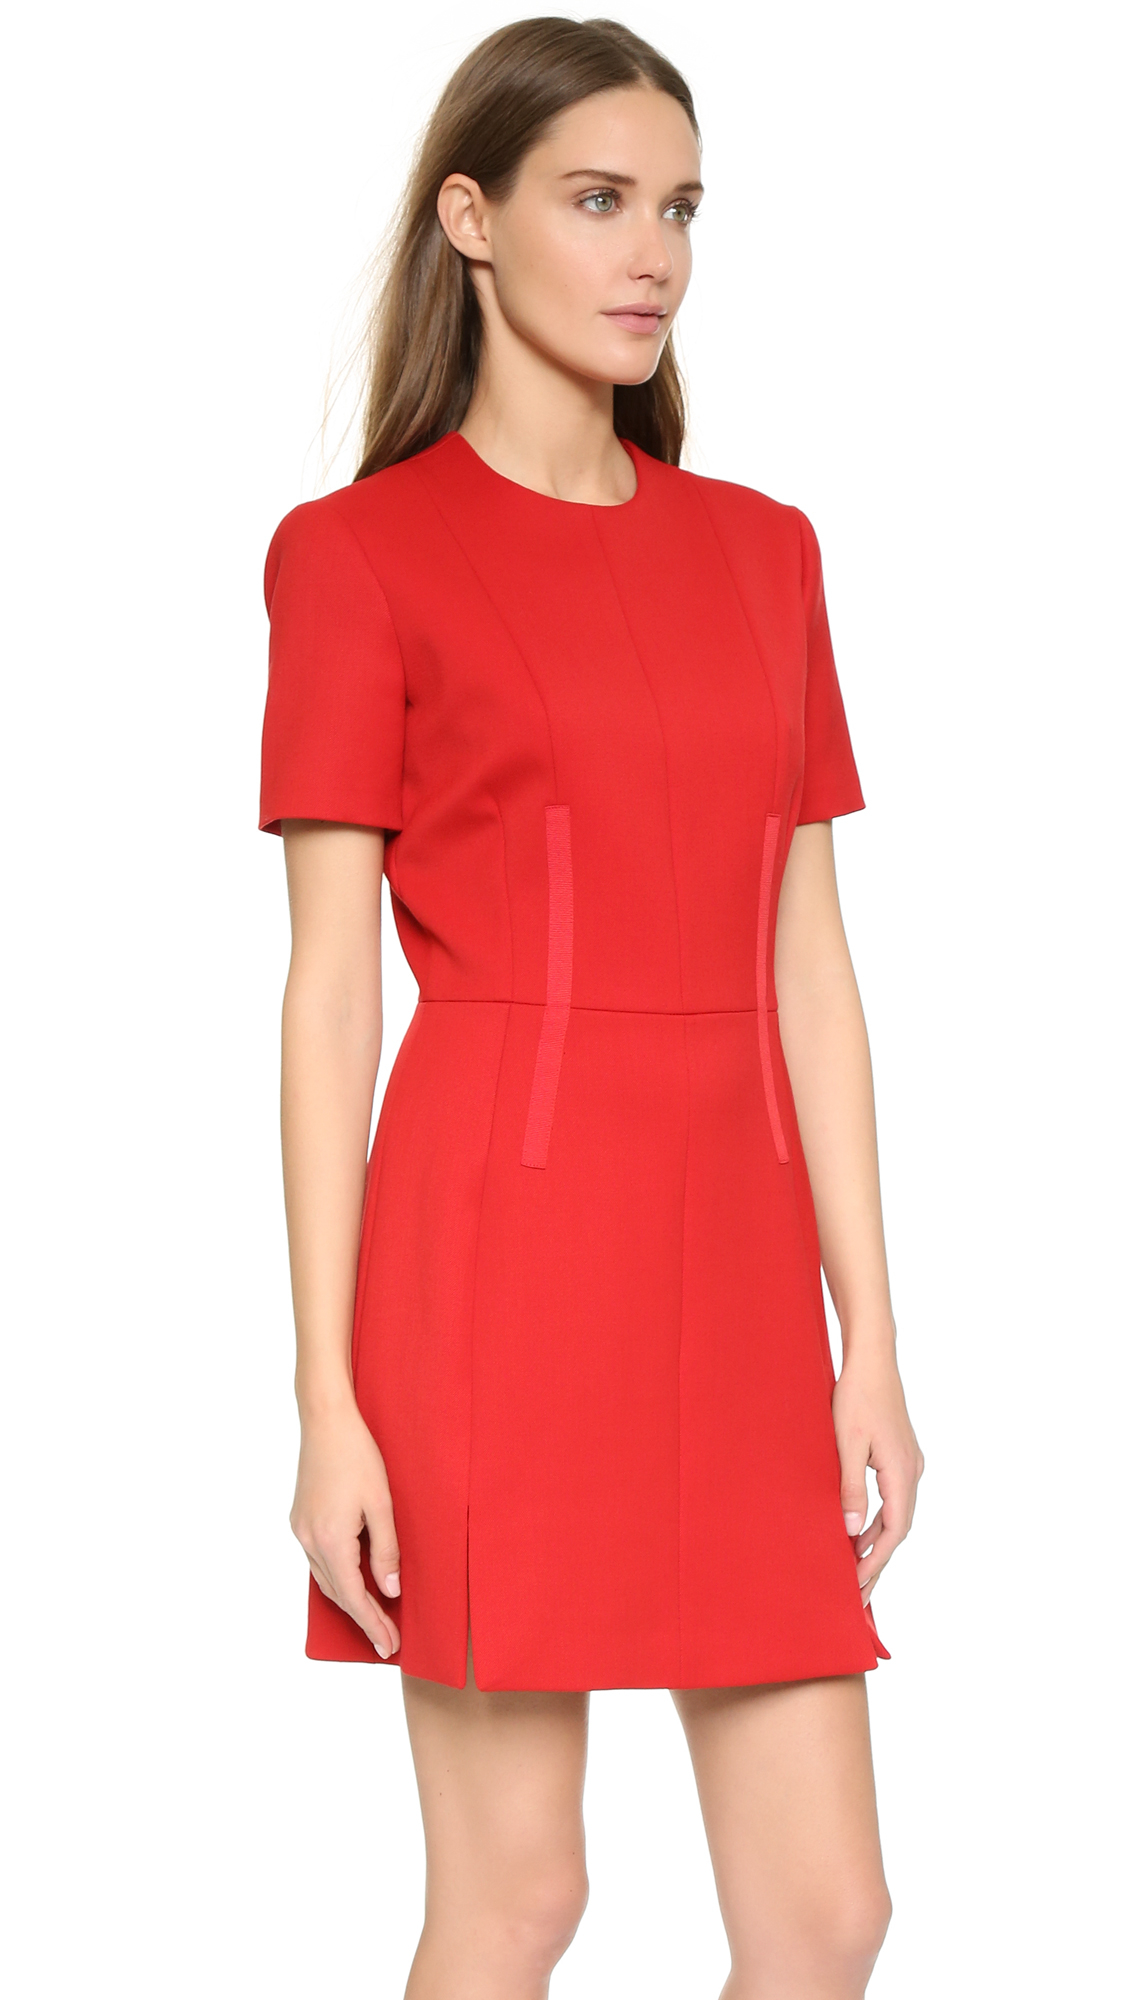 Carven Short Sleeve Dress - Rouge in Red - Lyst